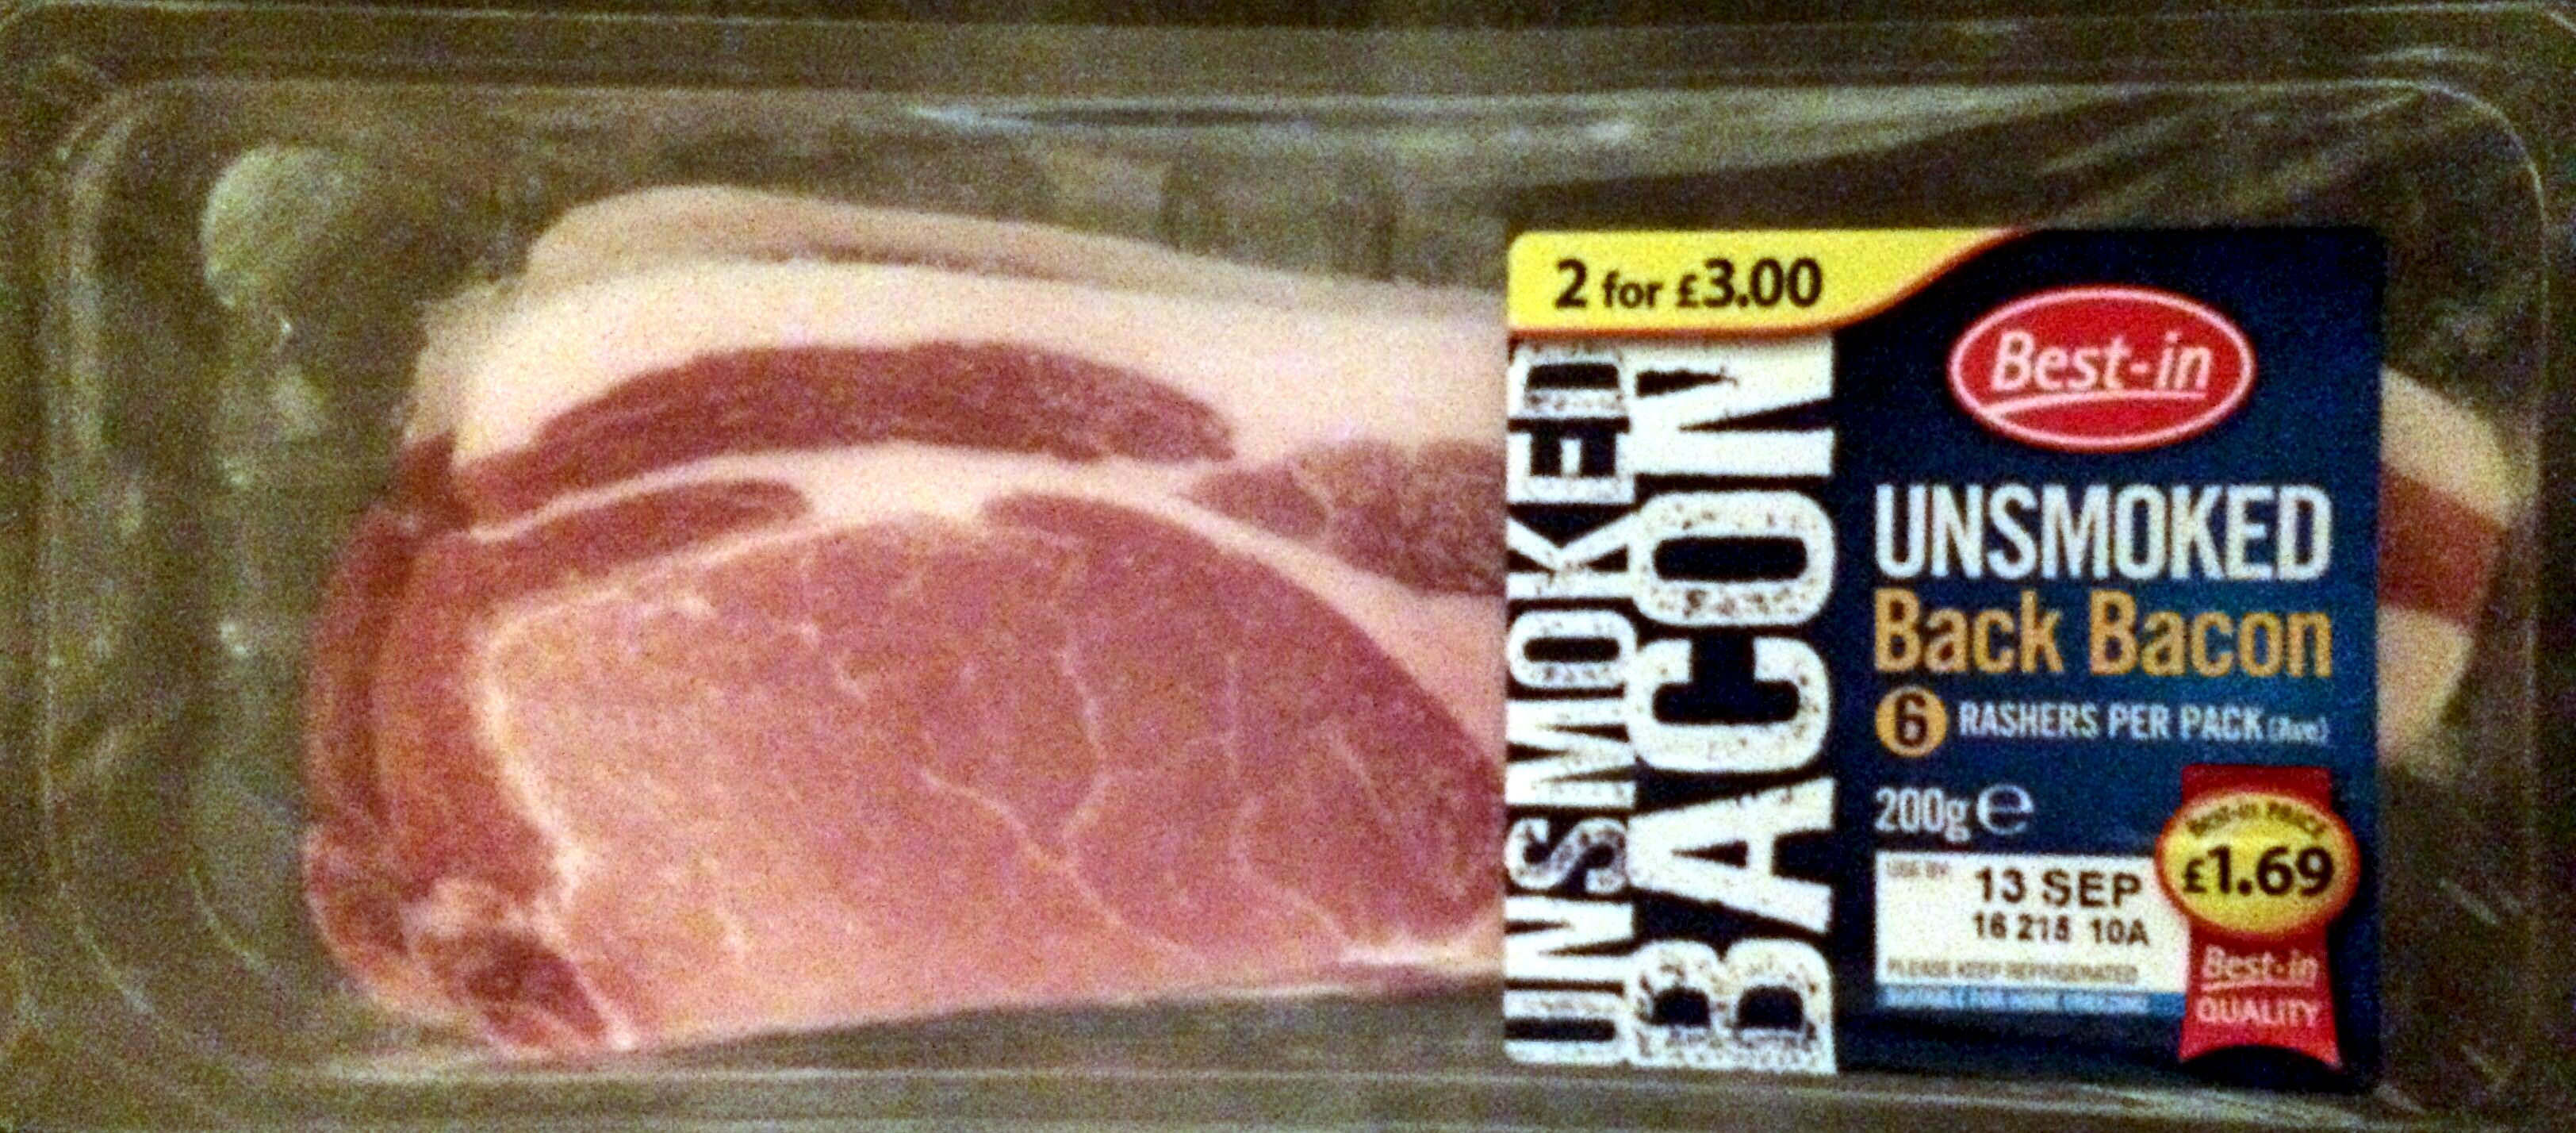 unsmoked bacon - Product